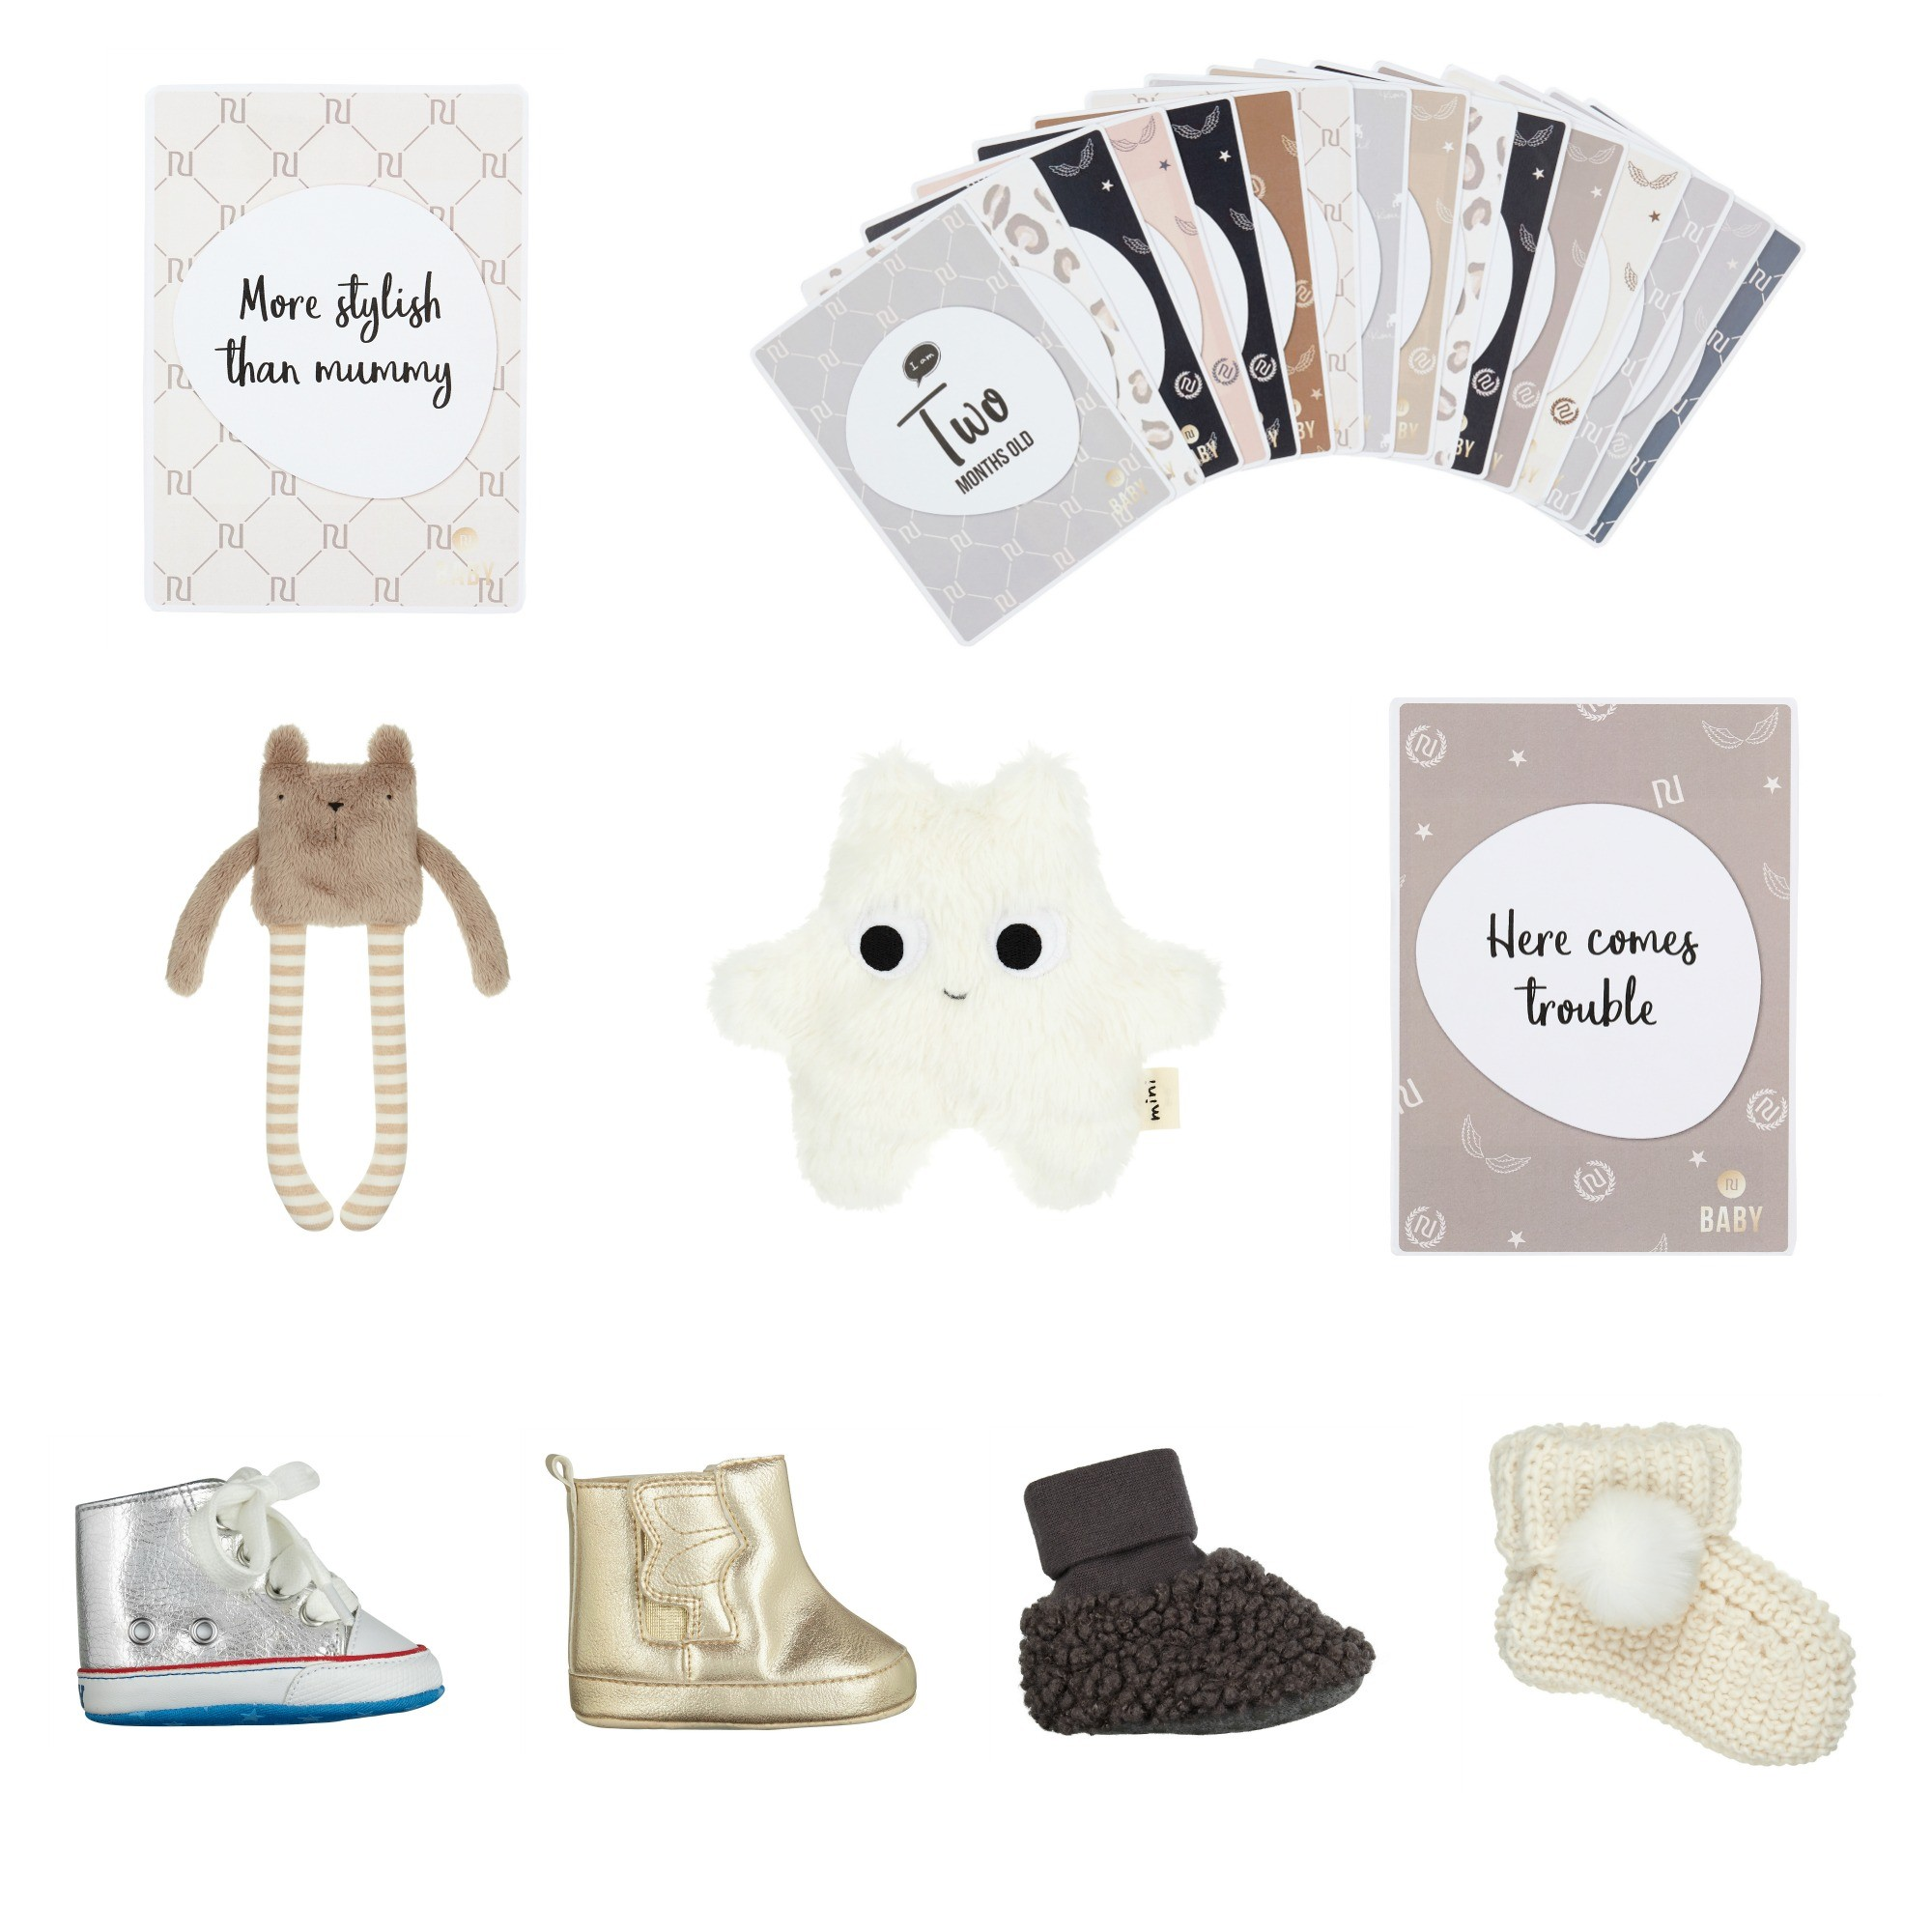 The River Island Baby gifting collection